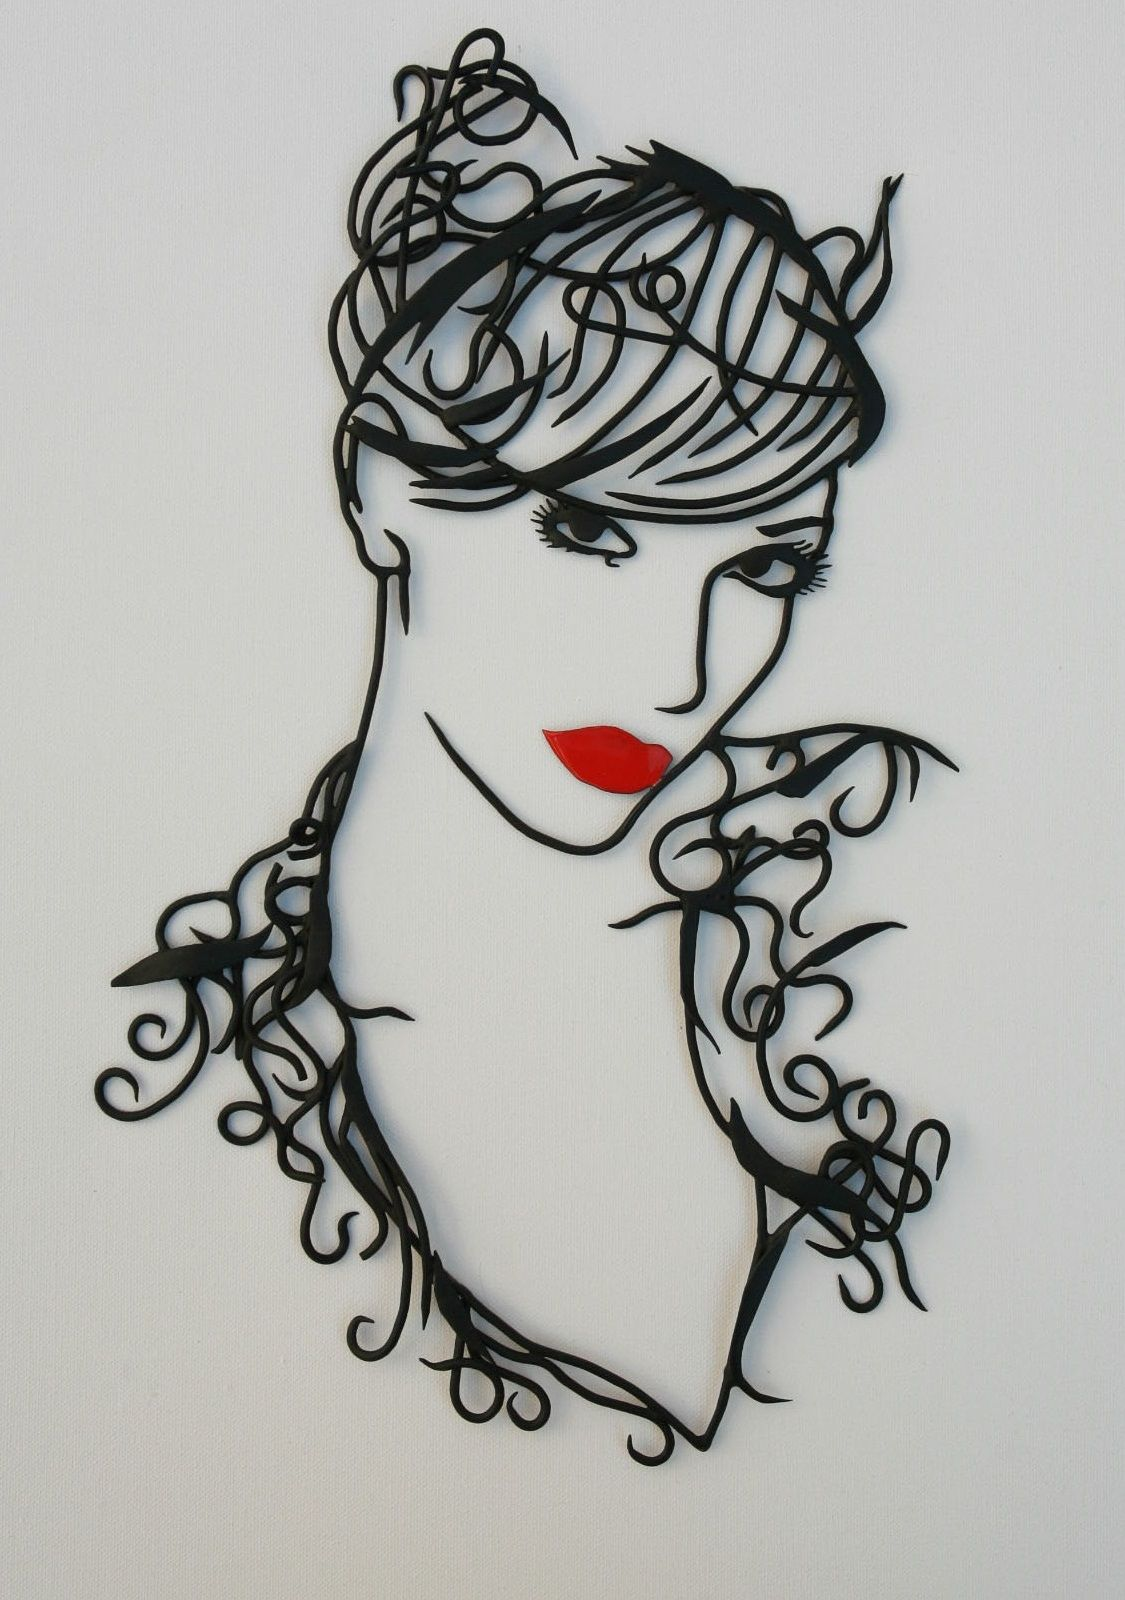 Pin by Ismael Busgeeth on silho | Pinterest | Wire art, Quilling and ...